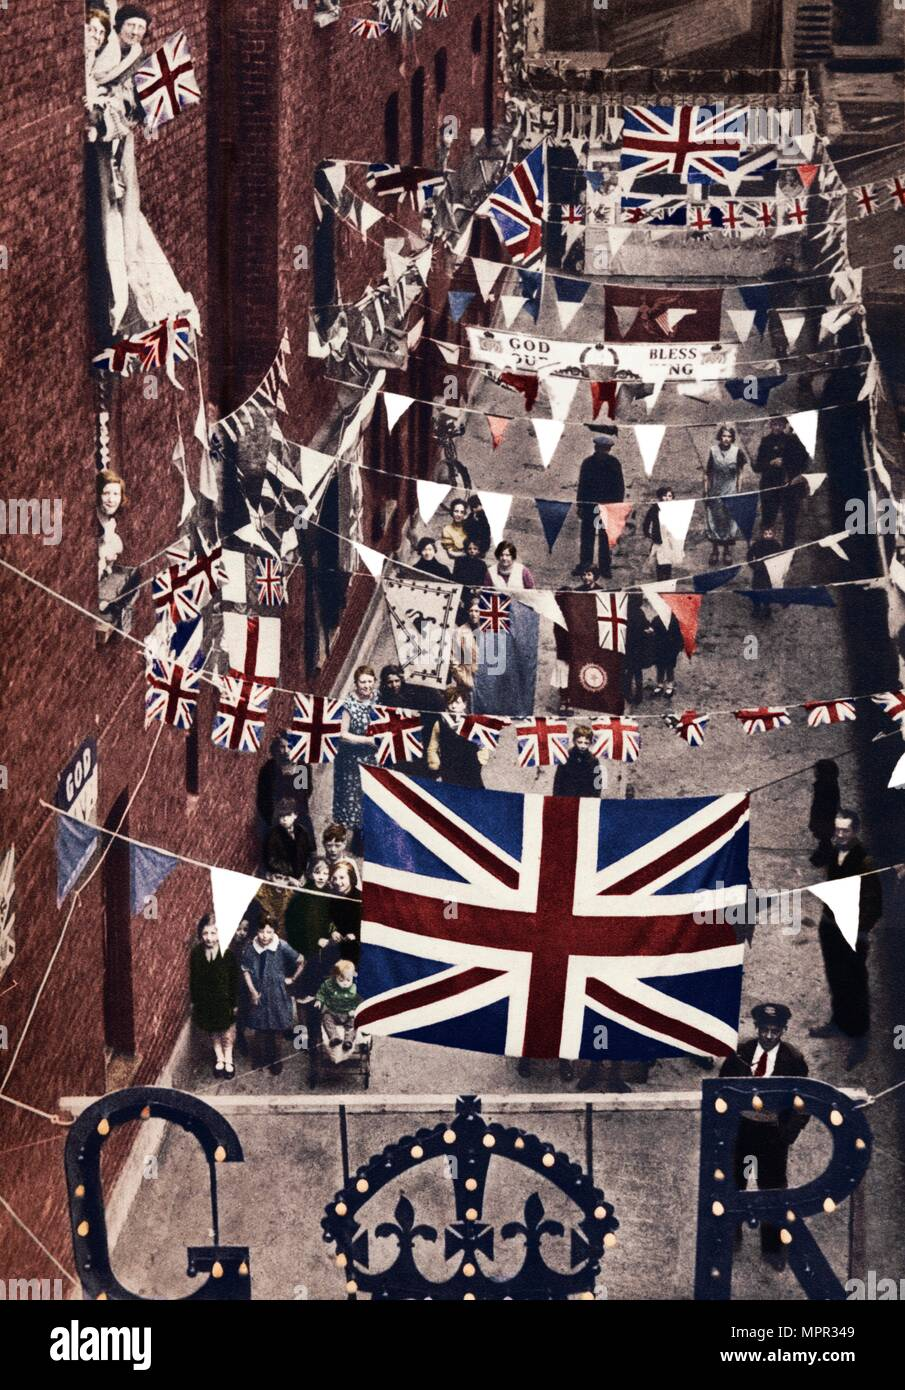 'Blackfriars, London, decoarted for King George VI's coronation', 1937. Artist: Unknown. - Stock Image